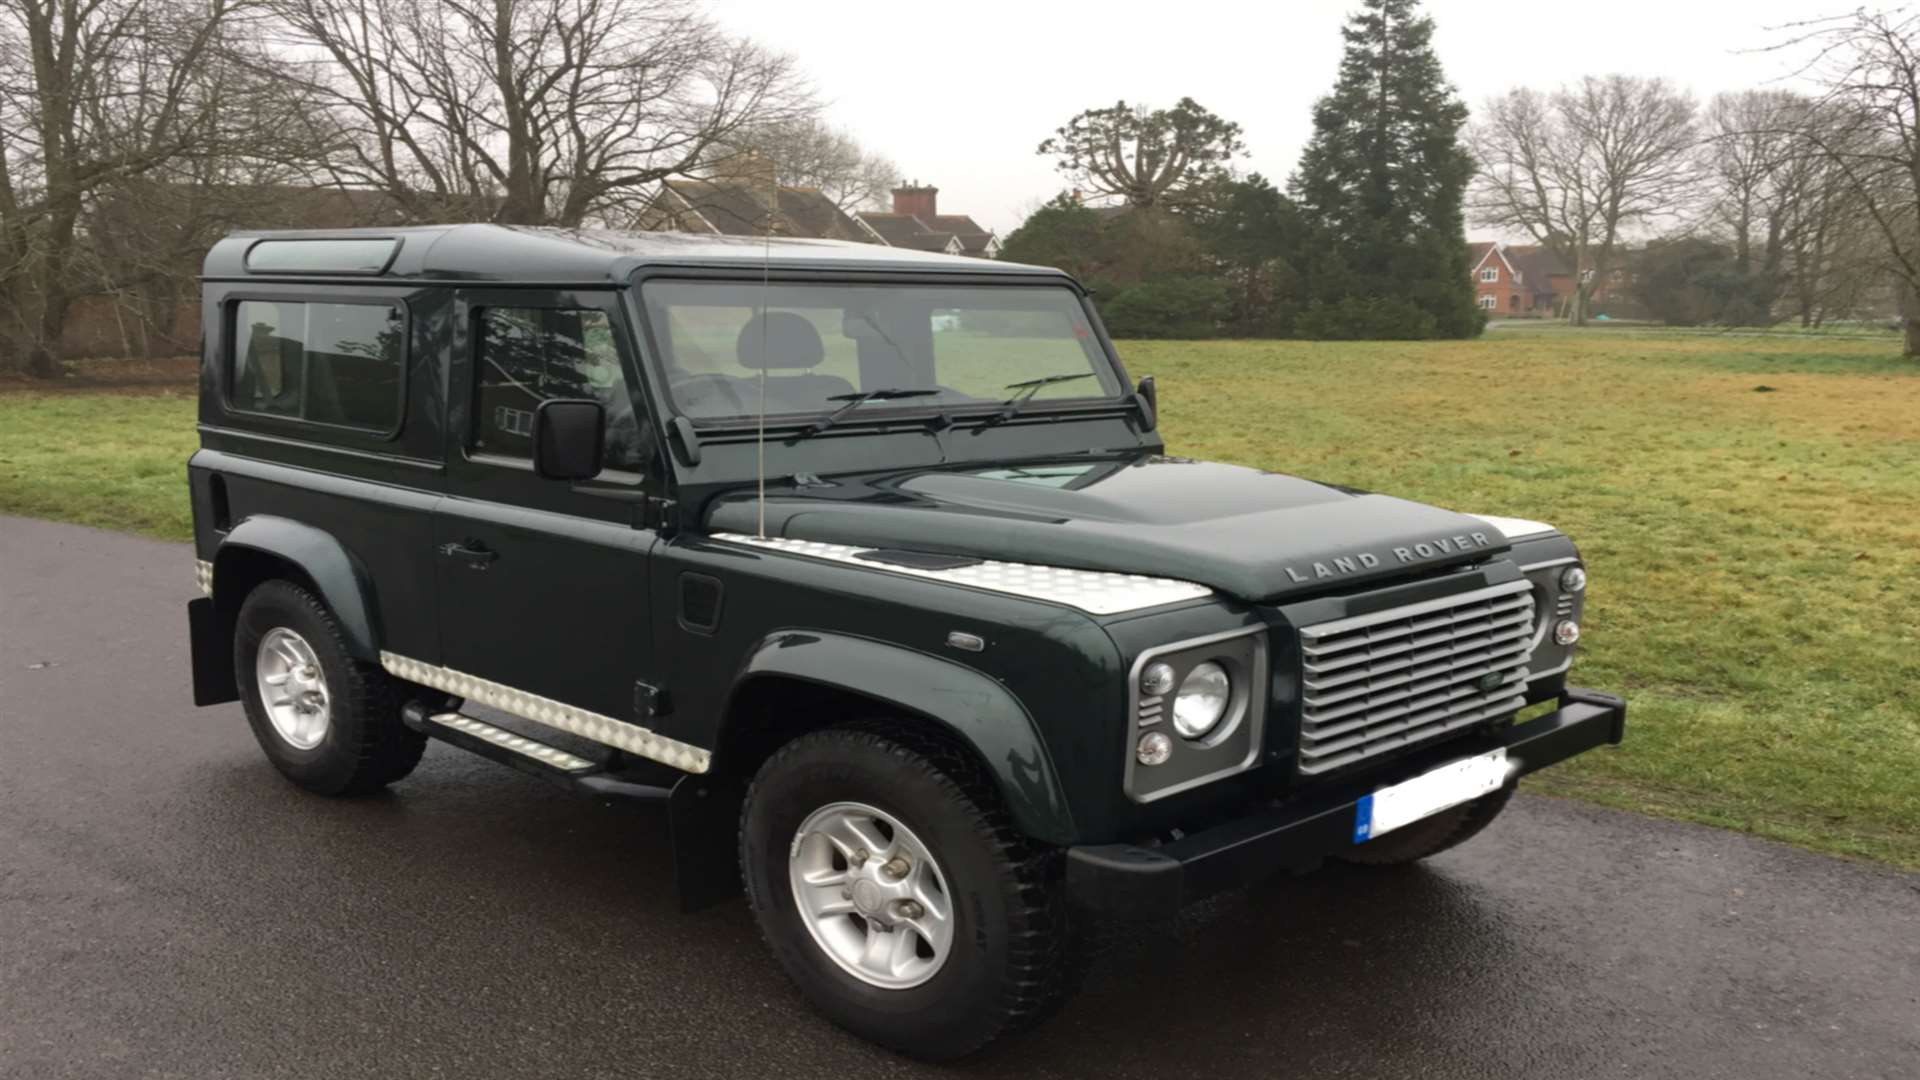 The Land Rover was left in a car park close to Hildenborough train station, in Tonbridge.